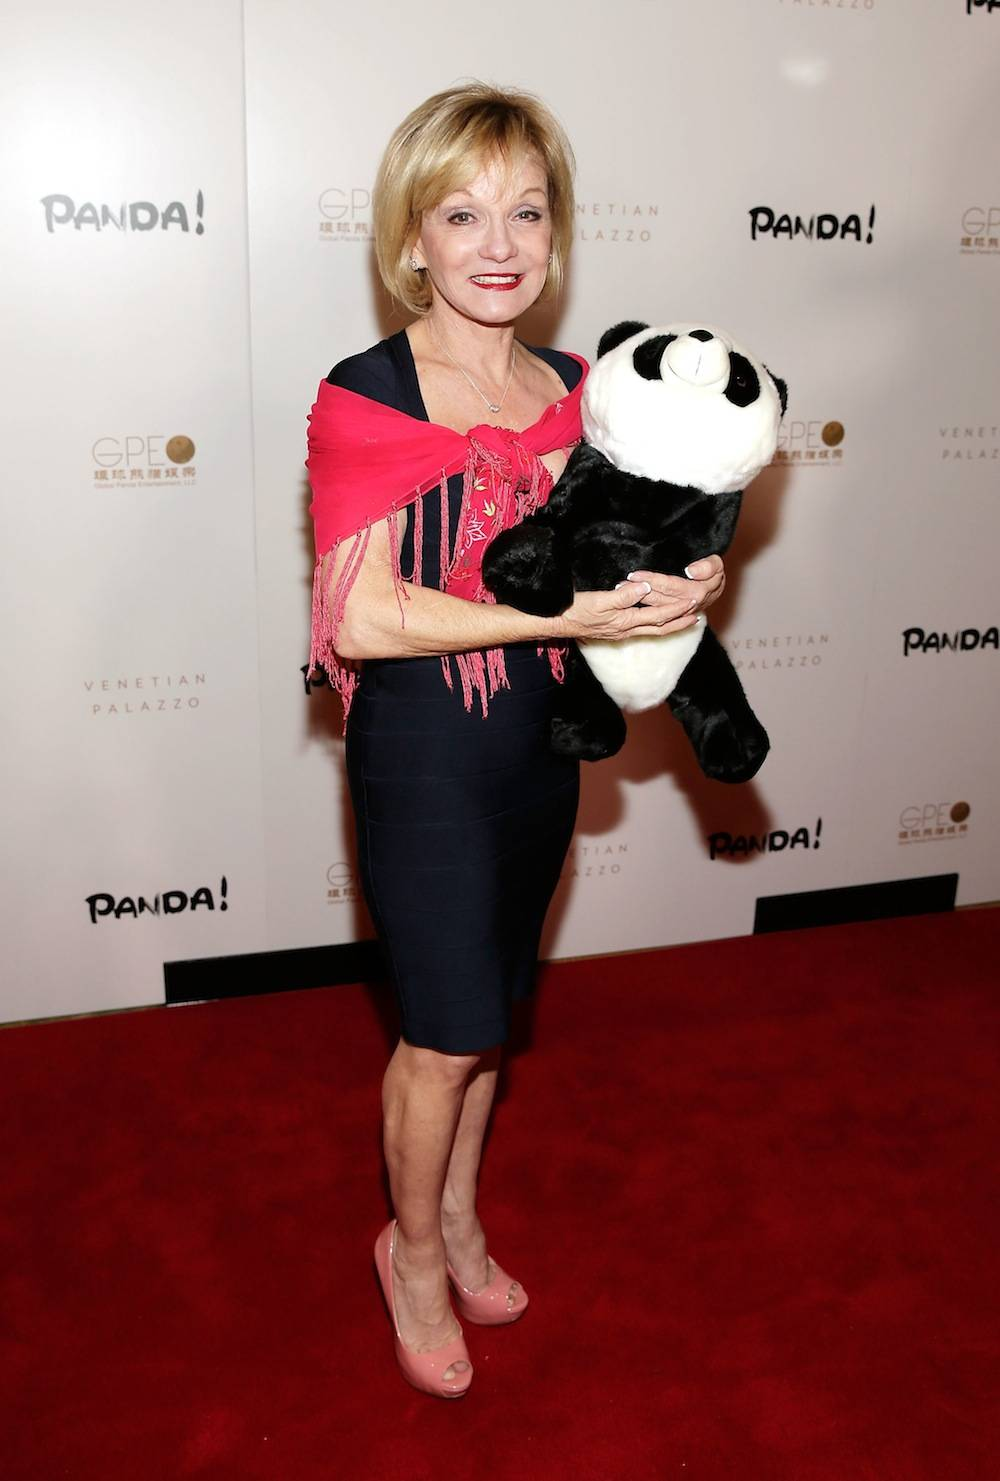 PANDA! Celebrates Its World Premiere At The Venetian - The Palazzo